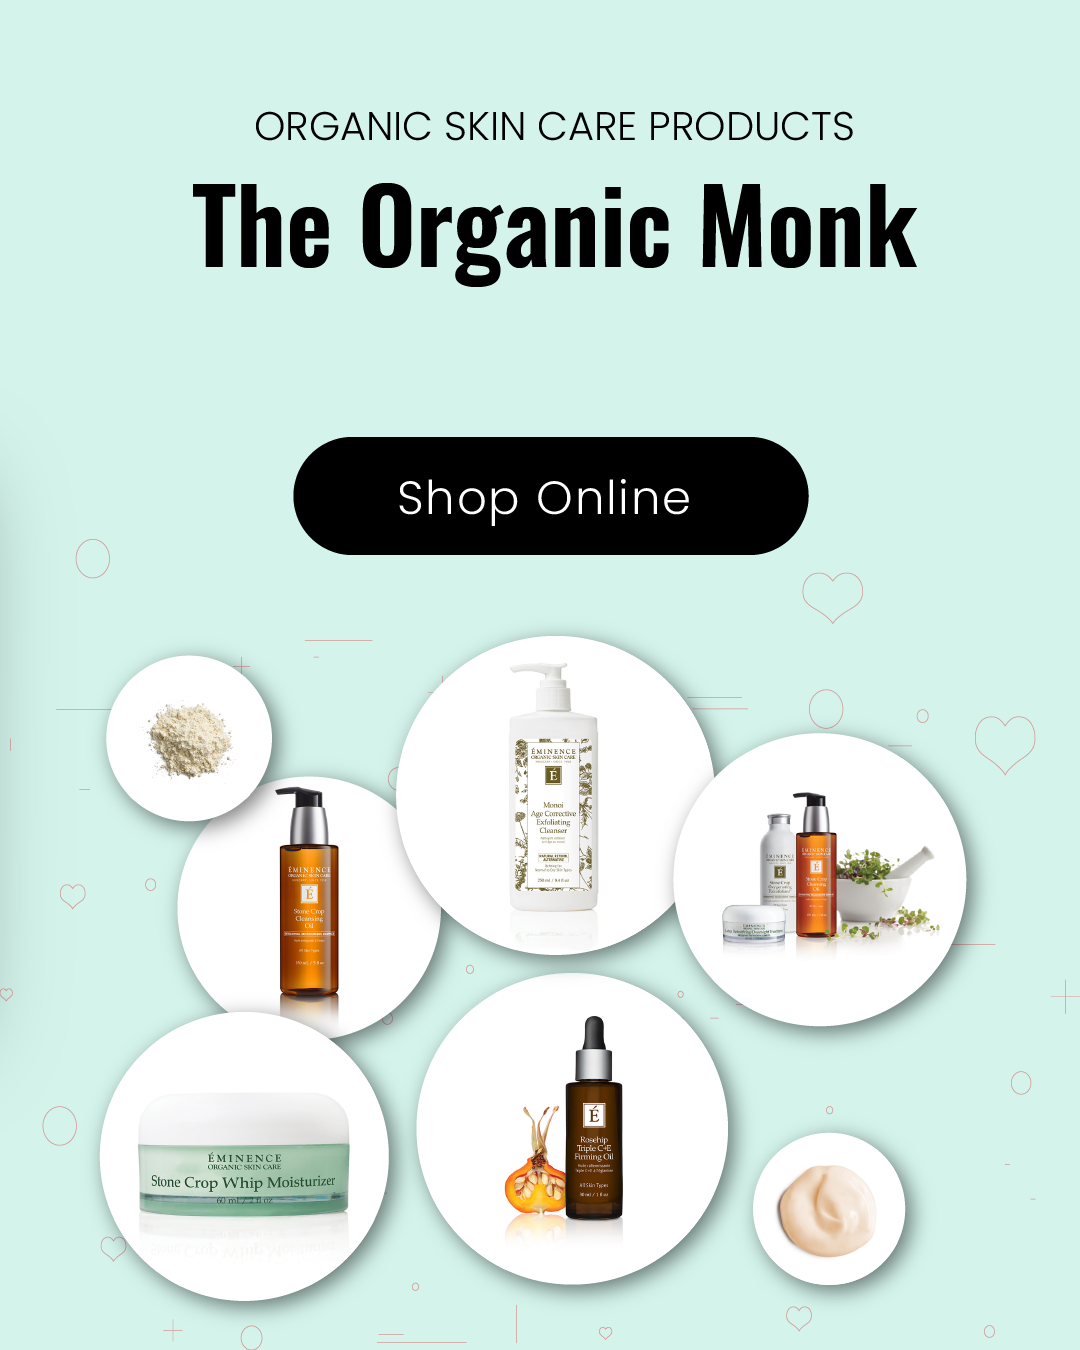 Introucing The Organic Monk